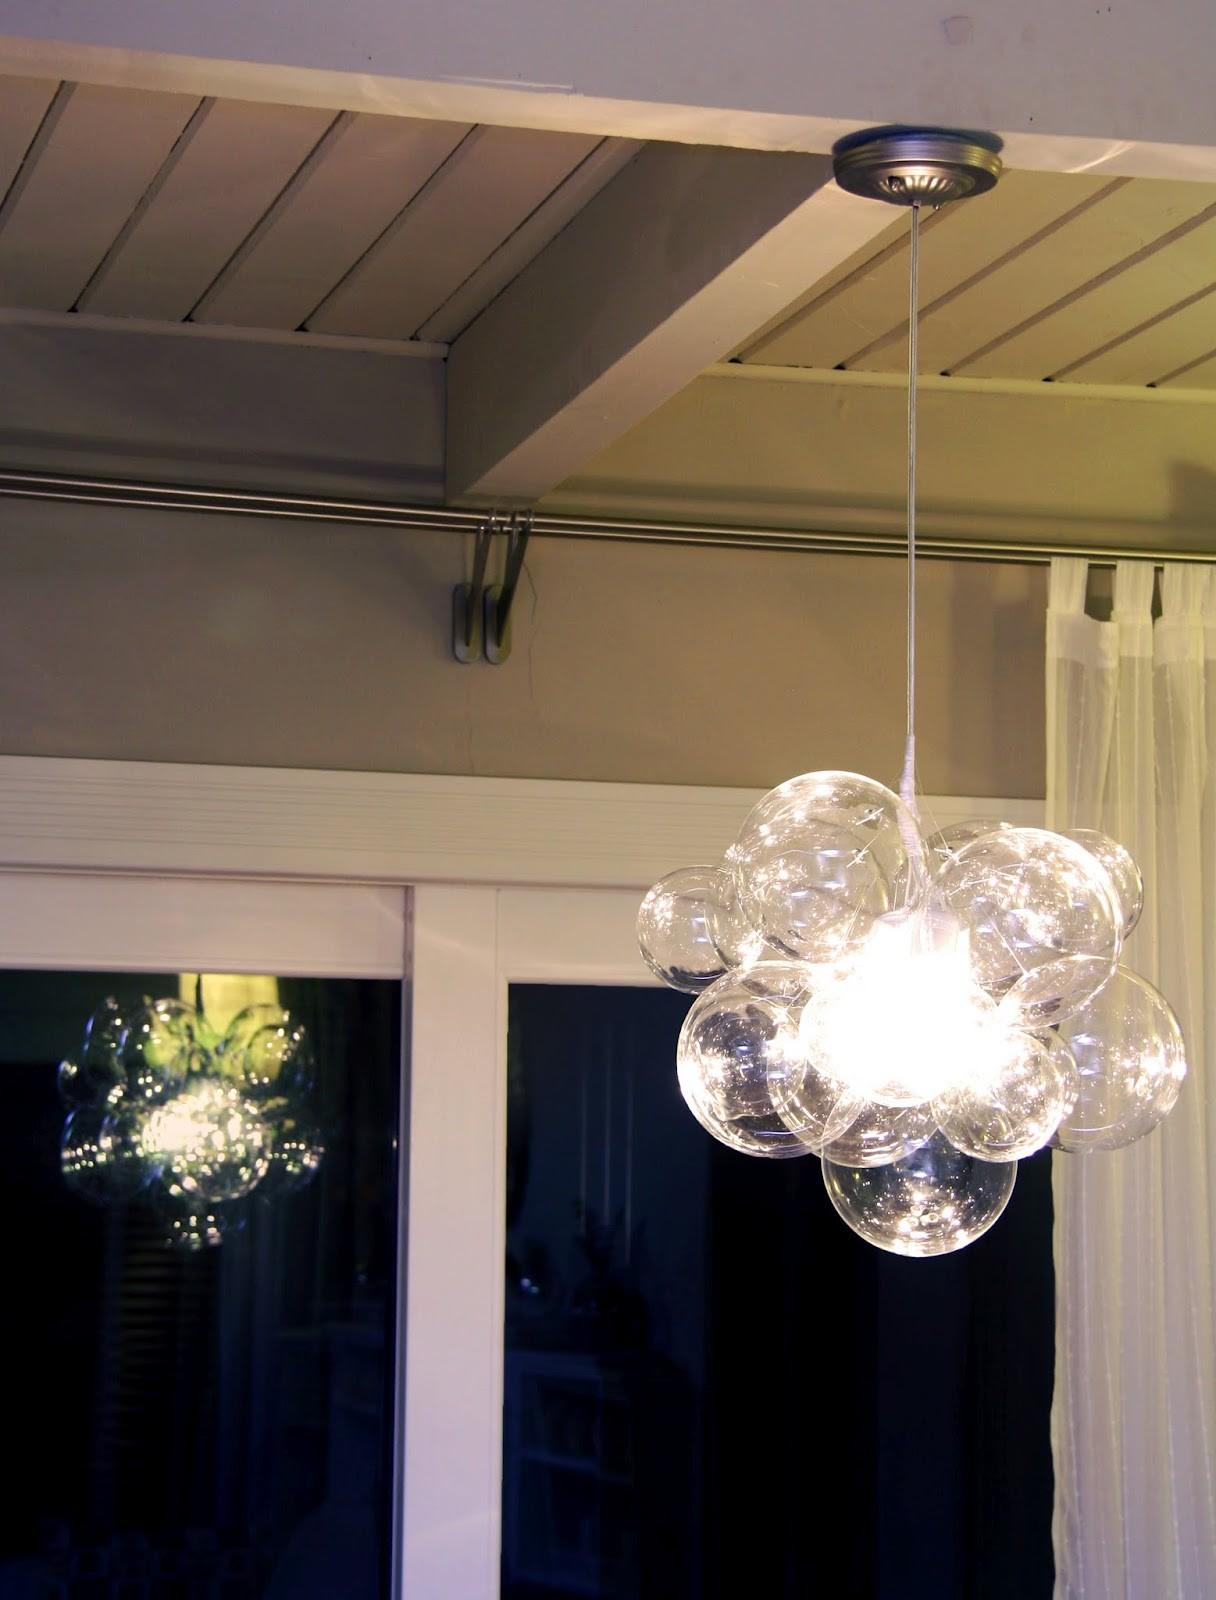 Diy Bubble Ball Chandelier Swing Cocoa Show